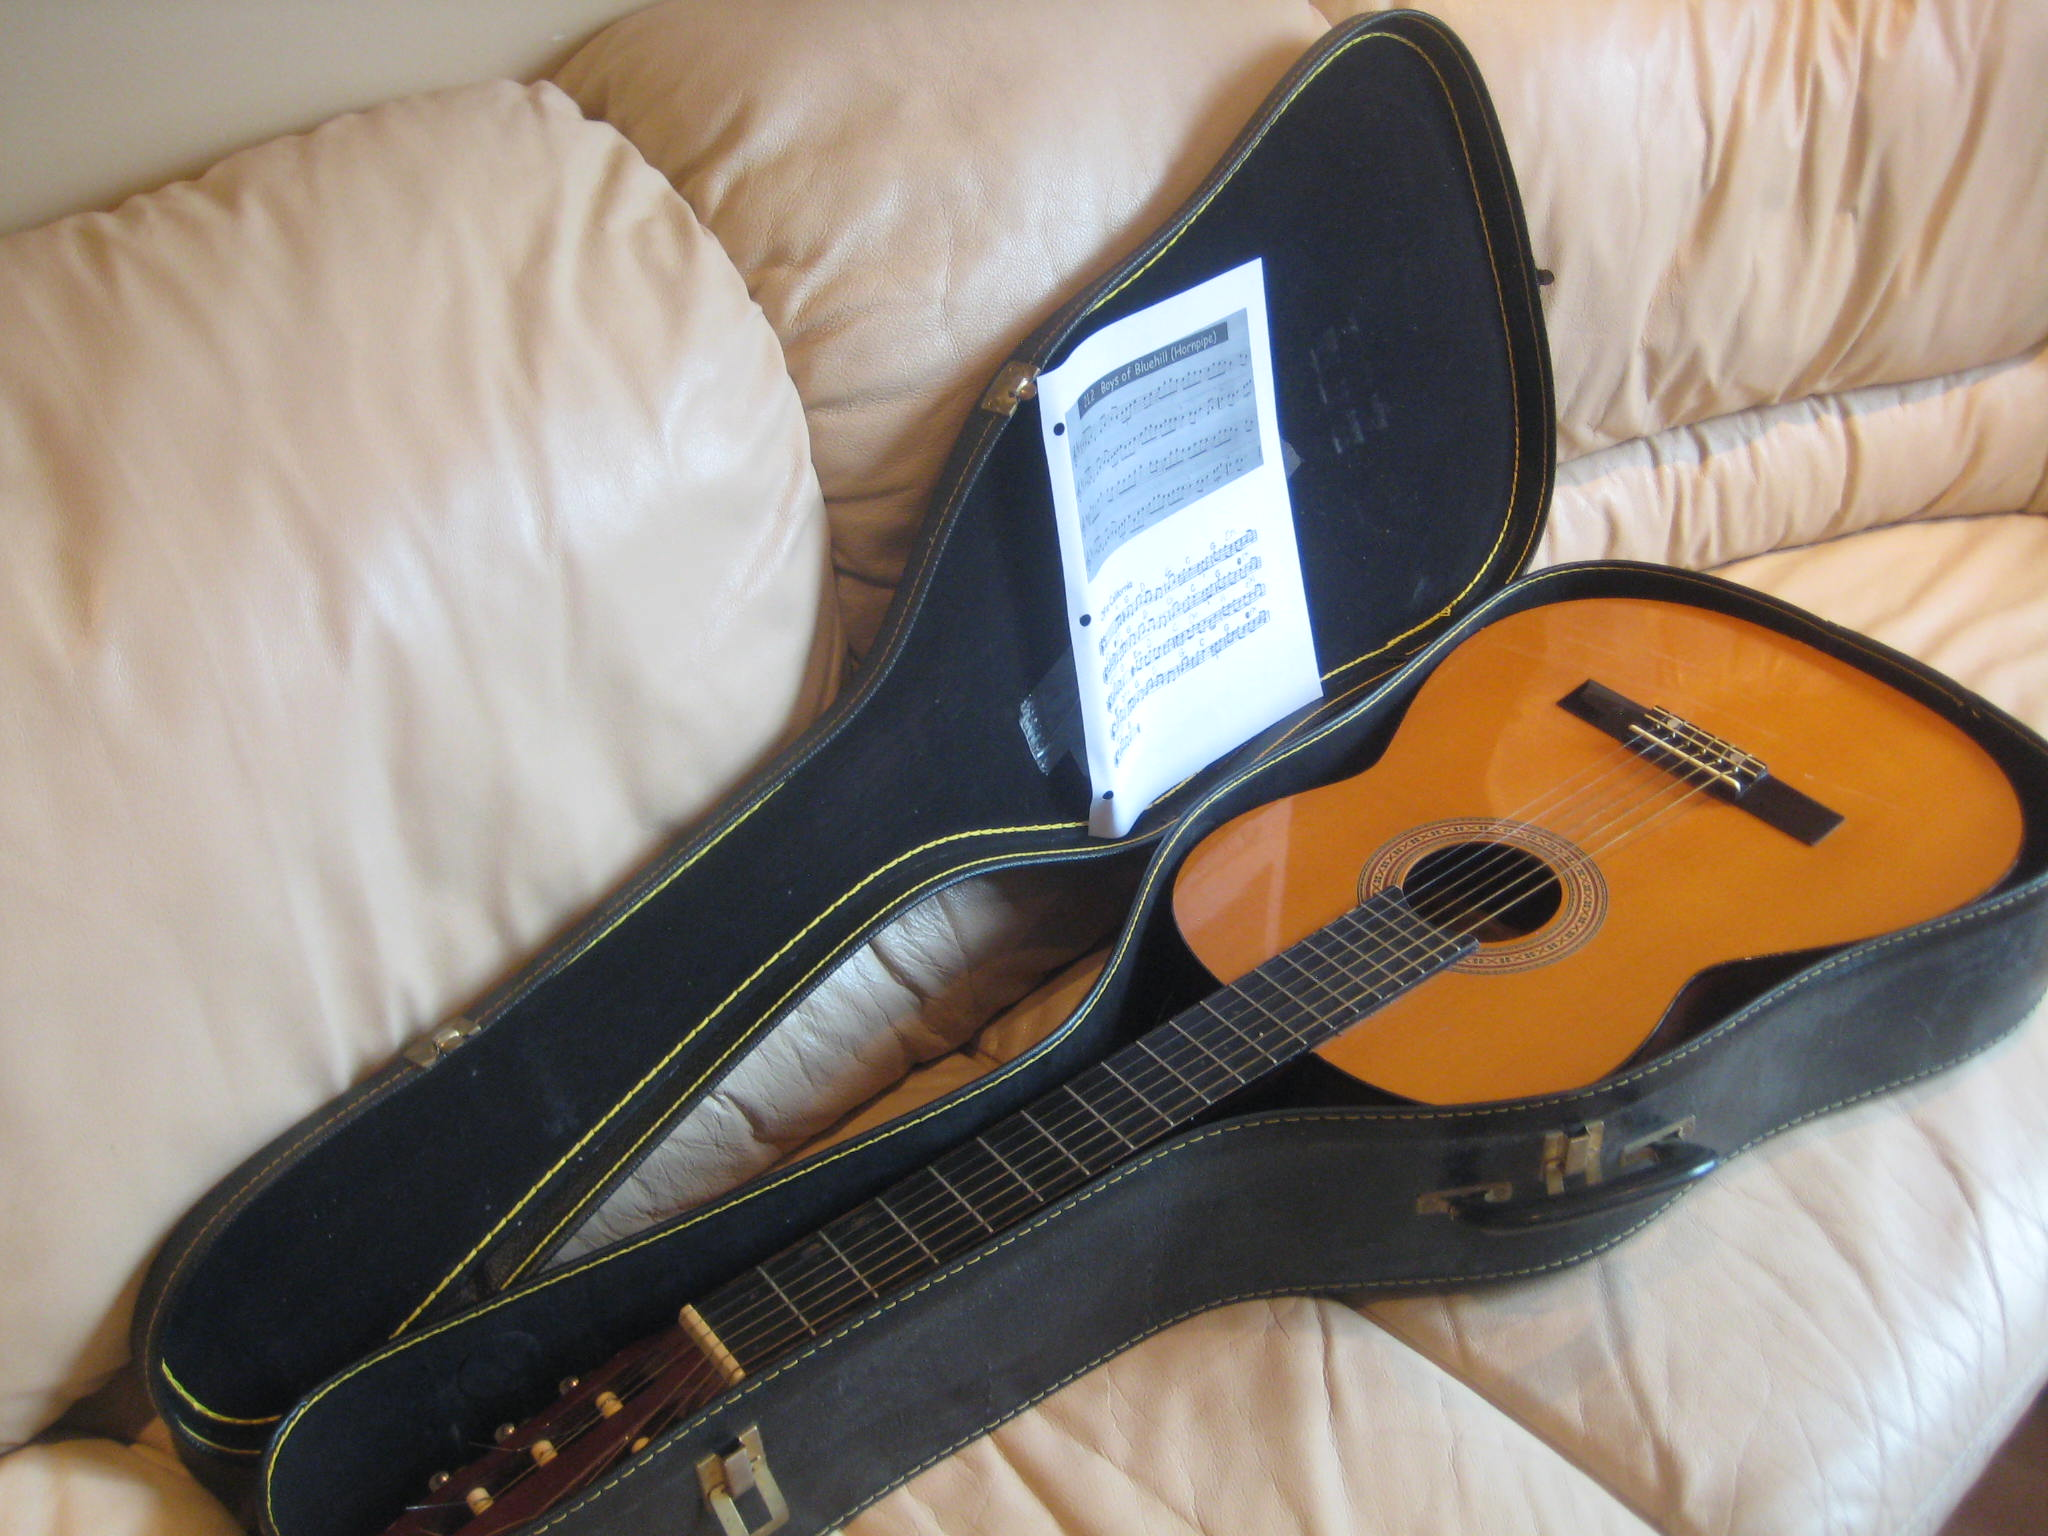 loanables acoustic guitar for rent astoria queens l i c rental located in astoria ny. Black Bedroom Furniture Sets. Home Design Ideas